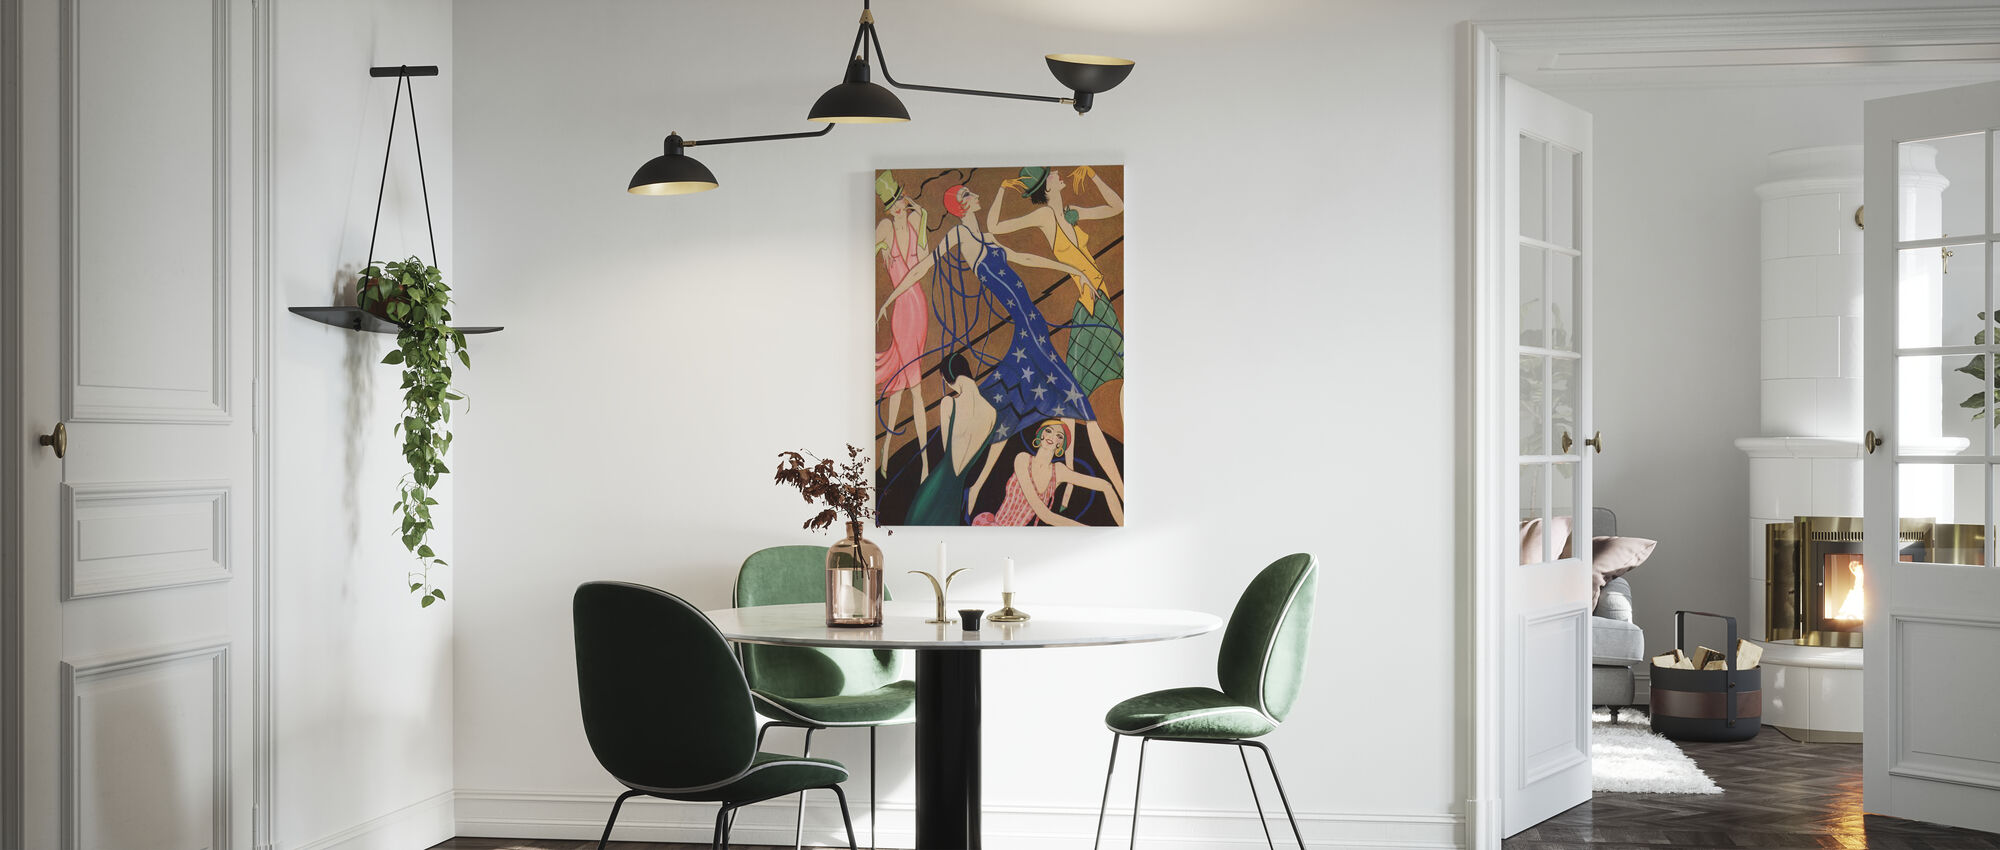 Models in Party Dresses, Gordon Conway - Canvas print - Kitchen